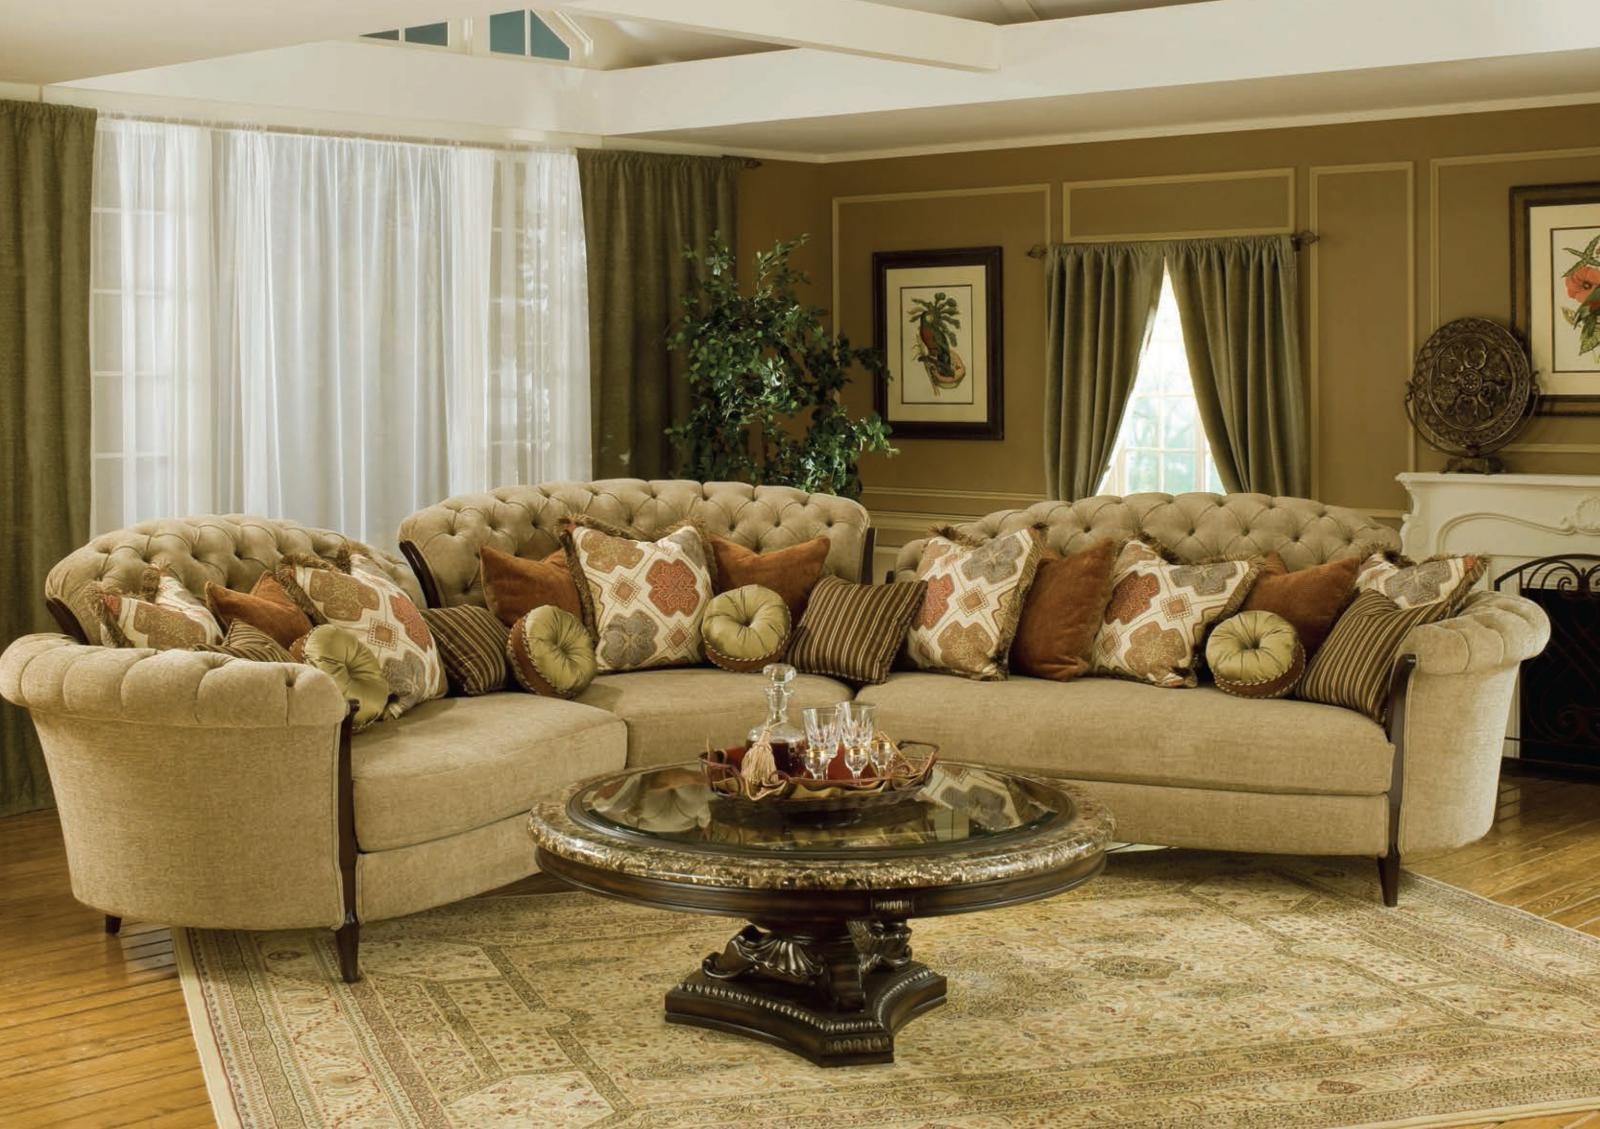 Bennetti Beige Chenille Luxury Tufted Sectional Sofa Elena Sectional Classic Traditional